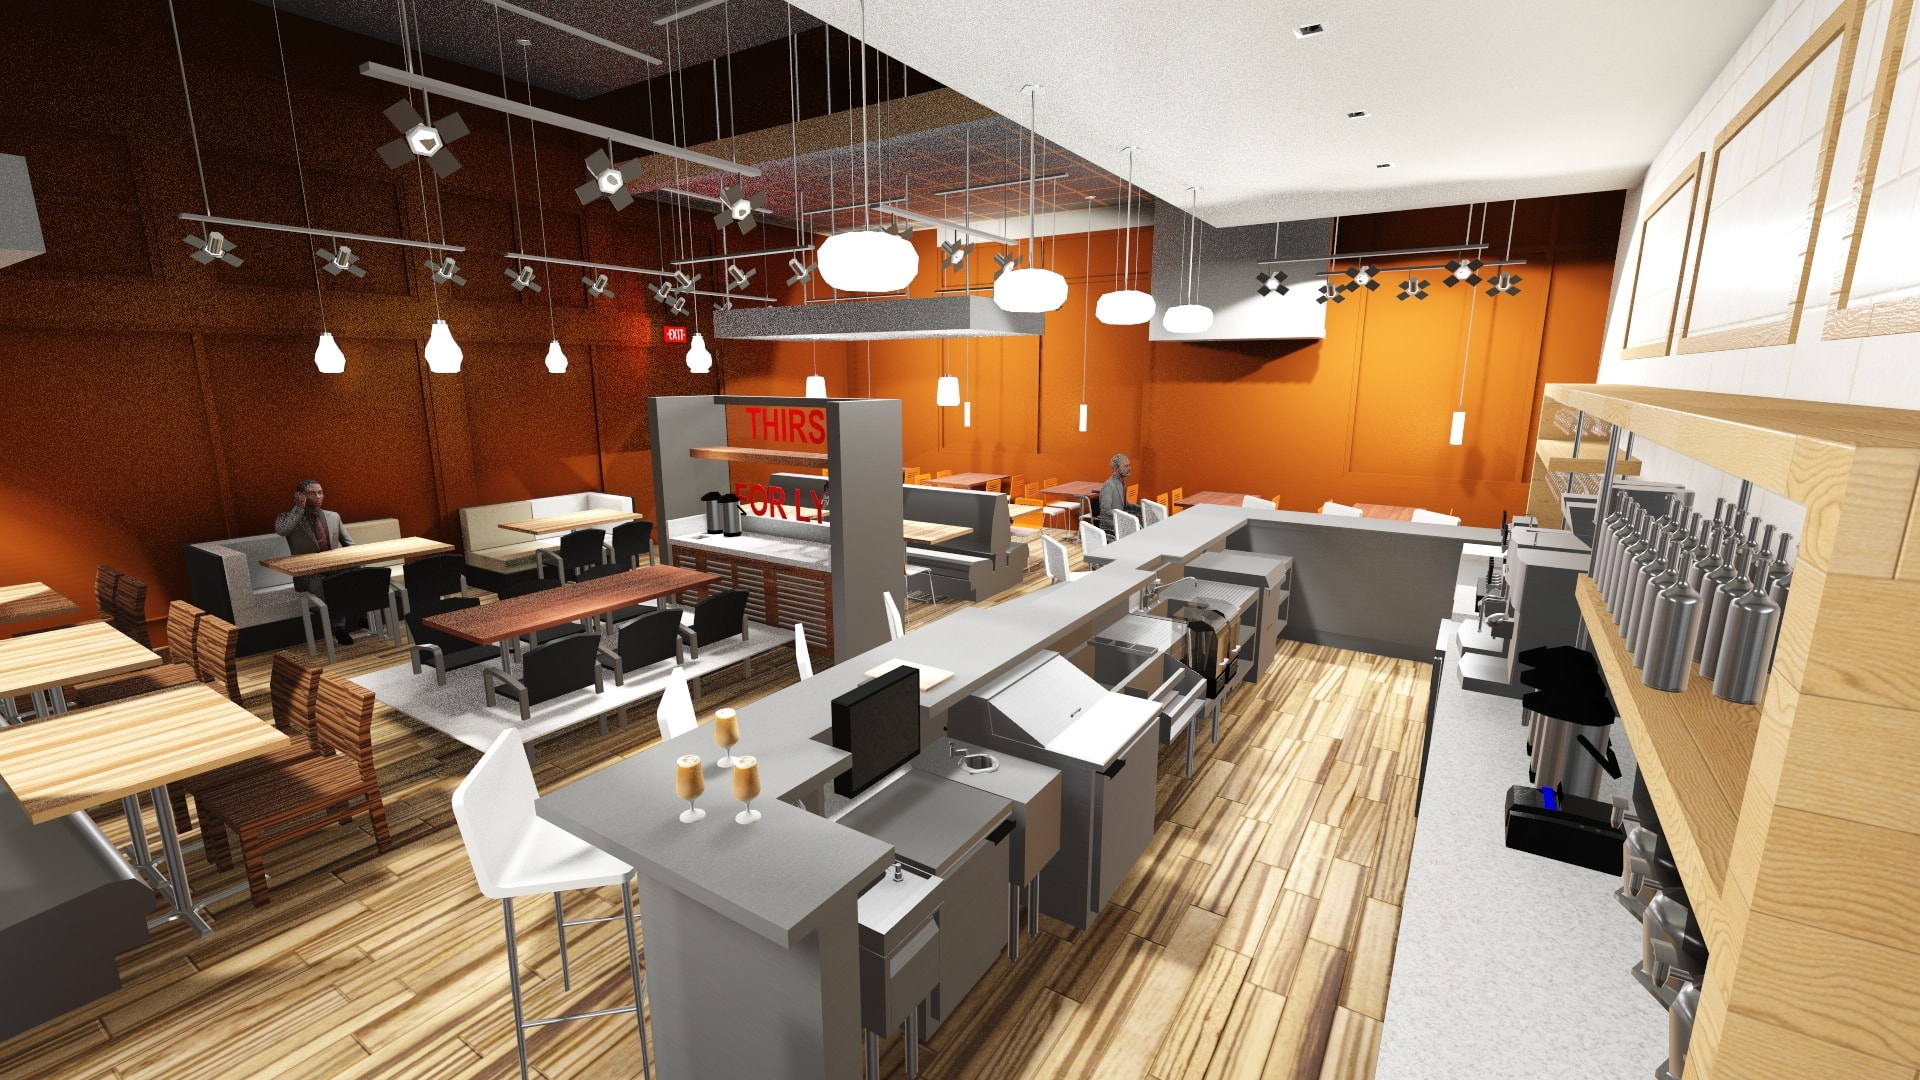 REVIT 3D Kitchen Design